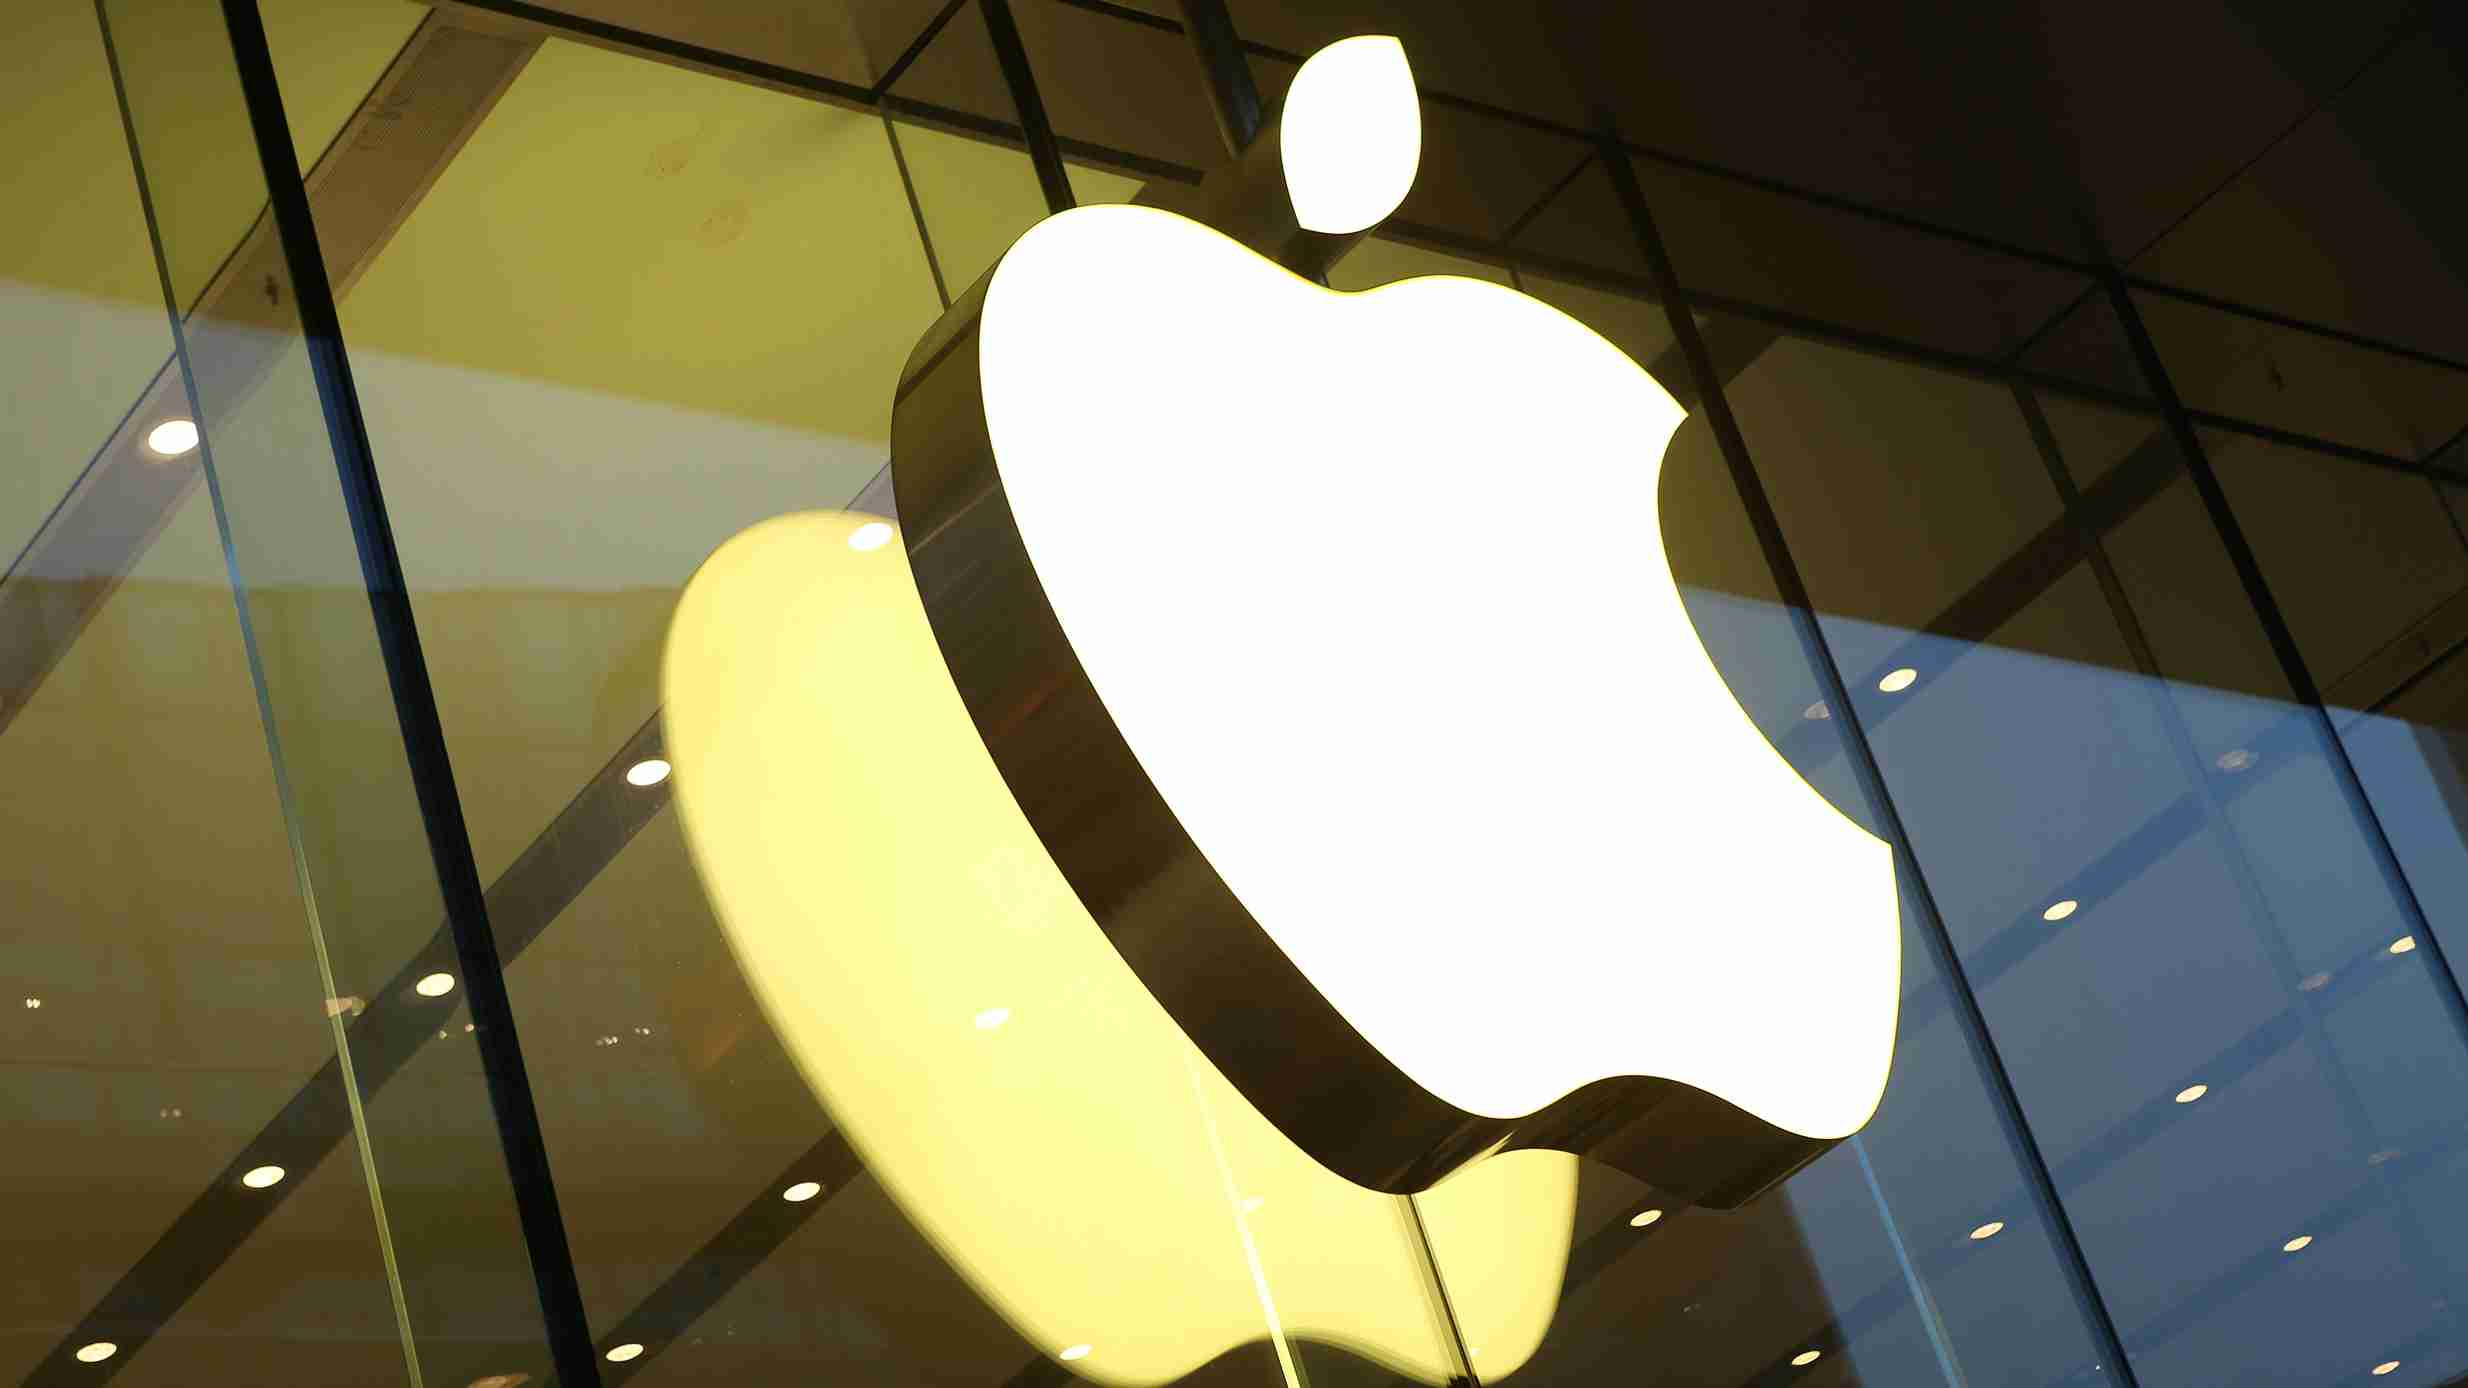 Apple worth $1 trillion, market shares eclipsed by Huawei